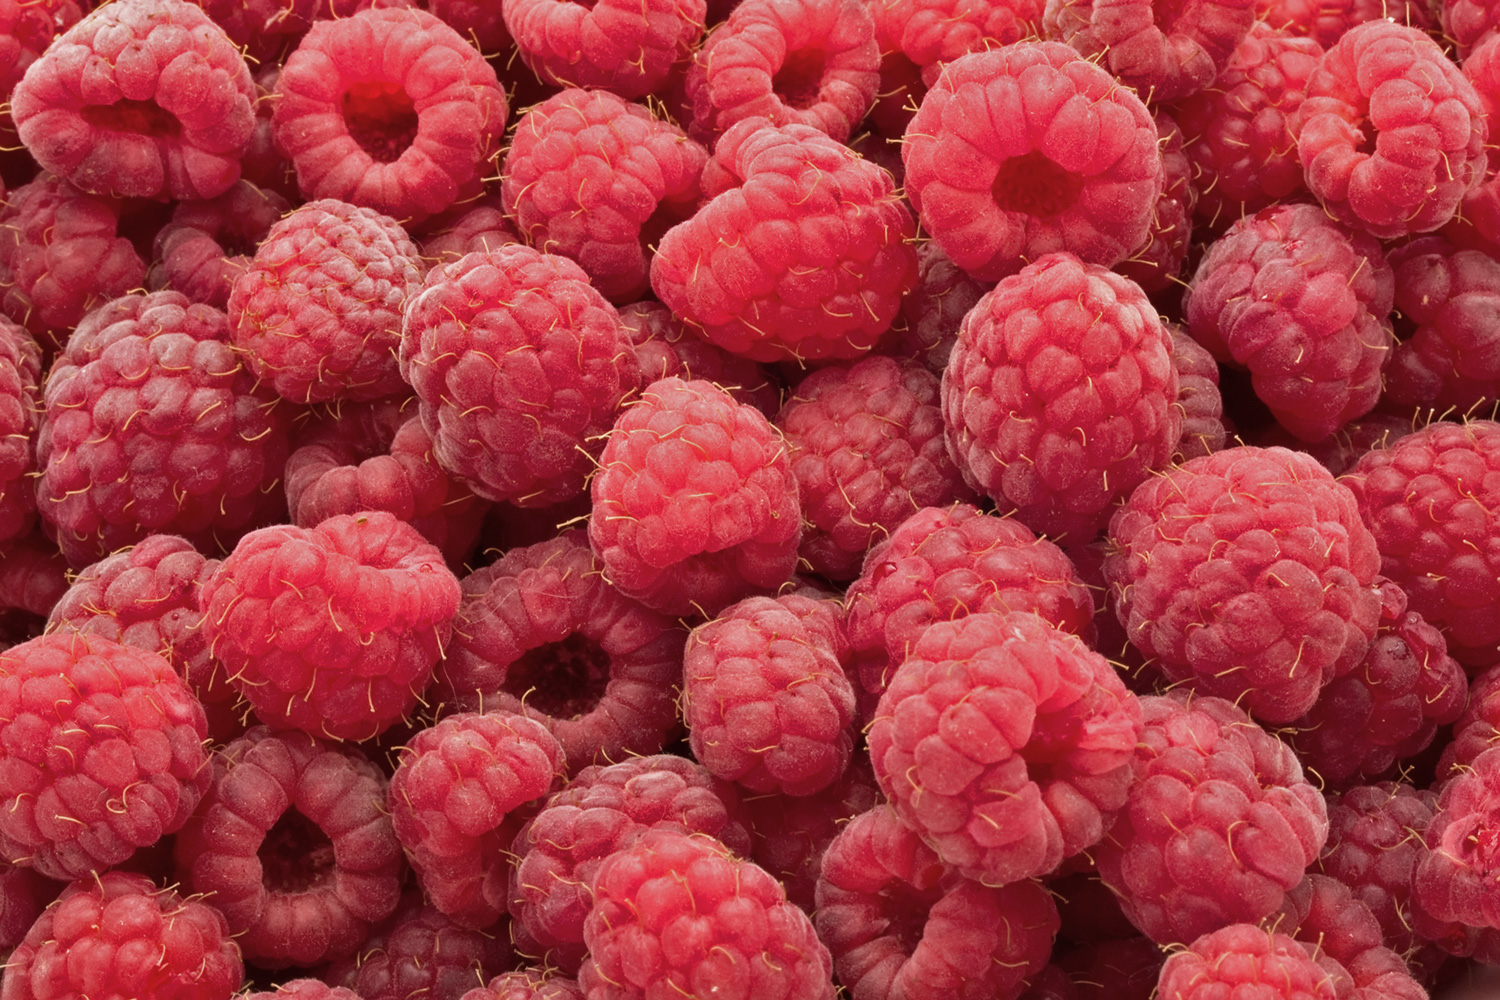 Totally Love Raspberries!